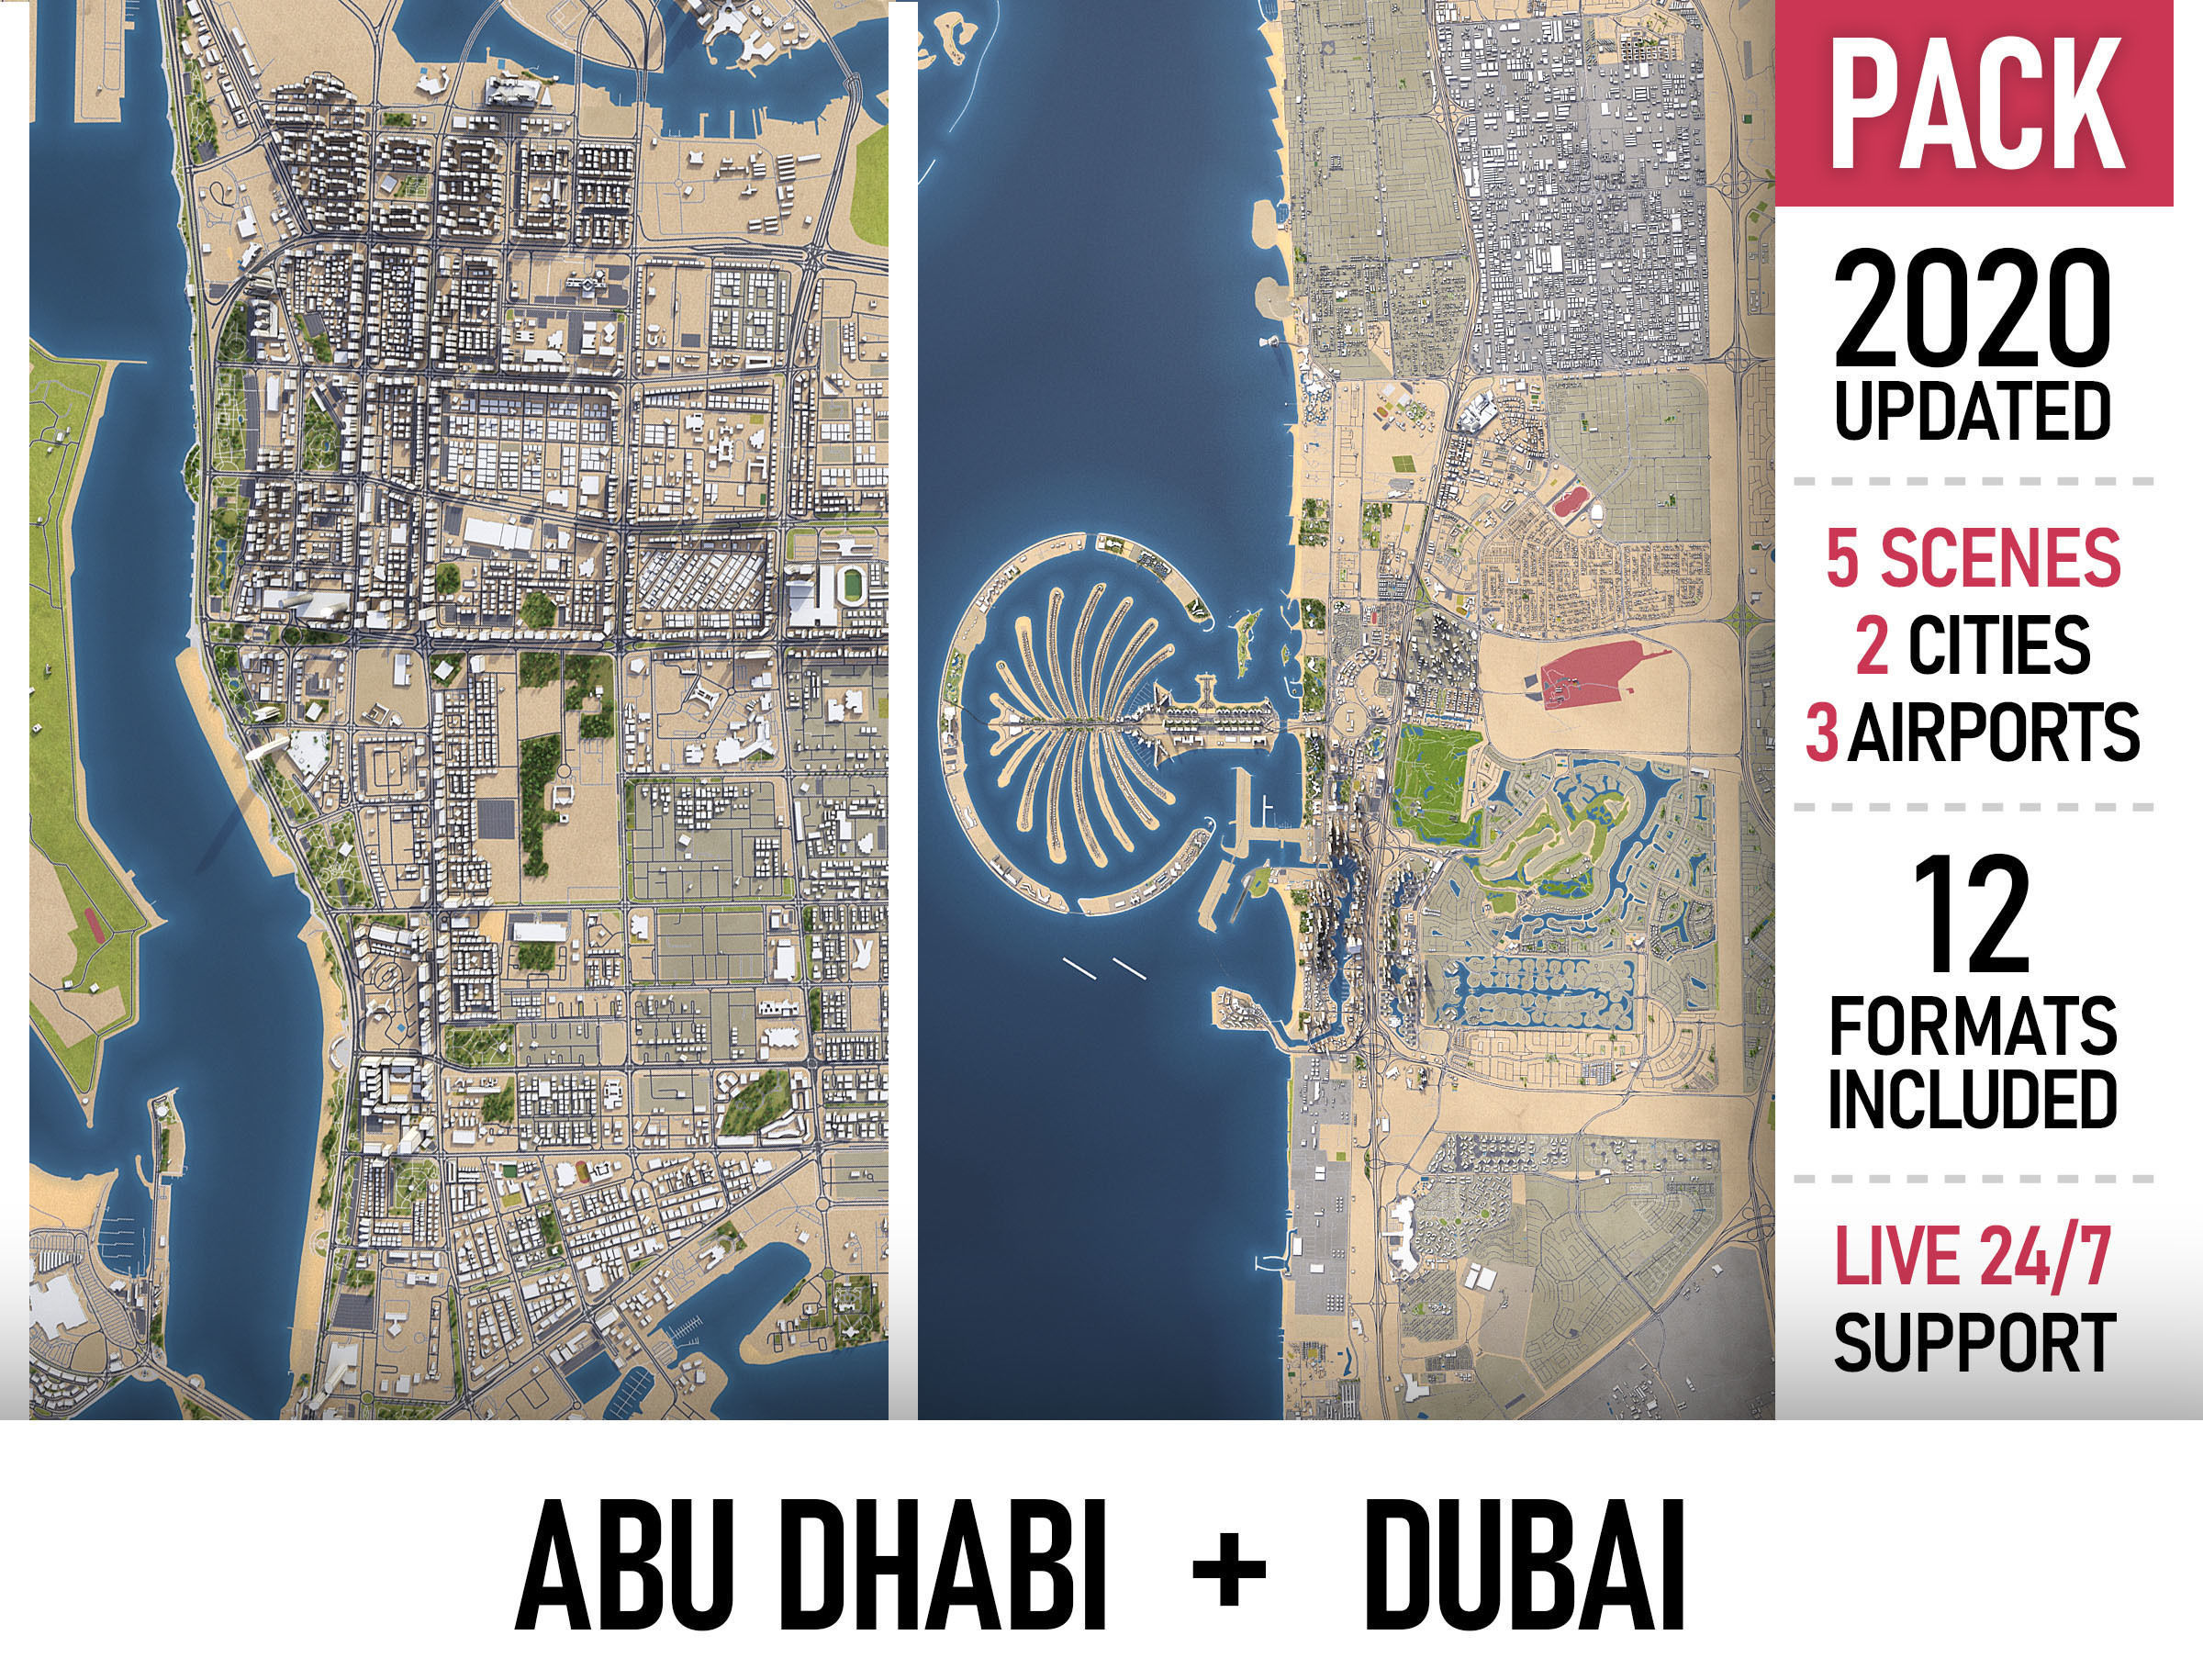 Abu Dhabi and Dubai